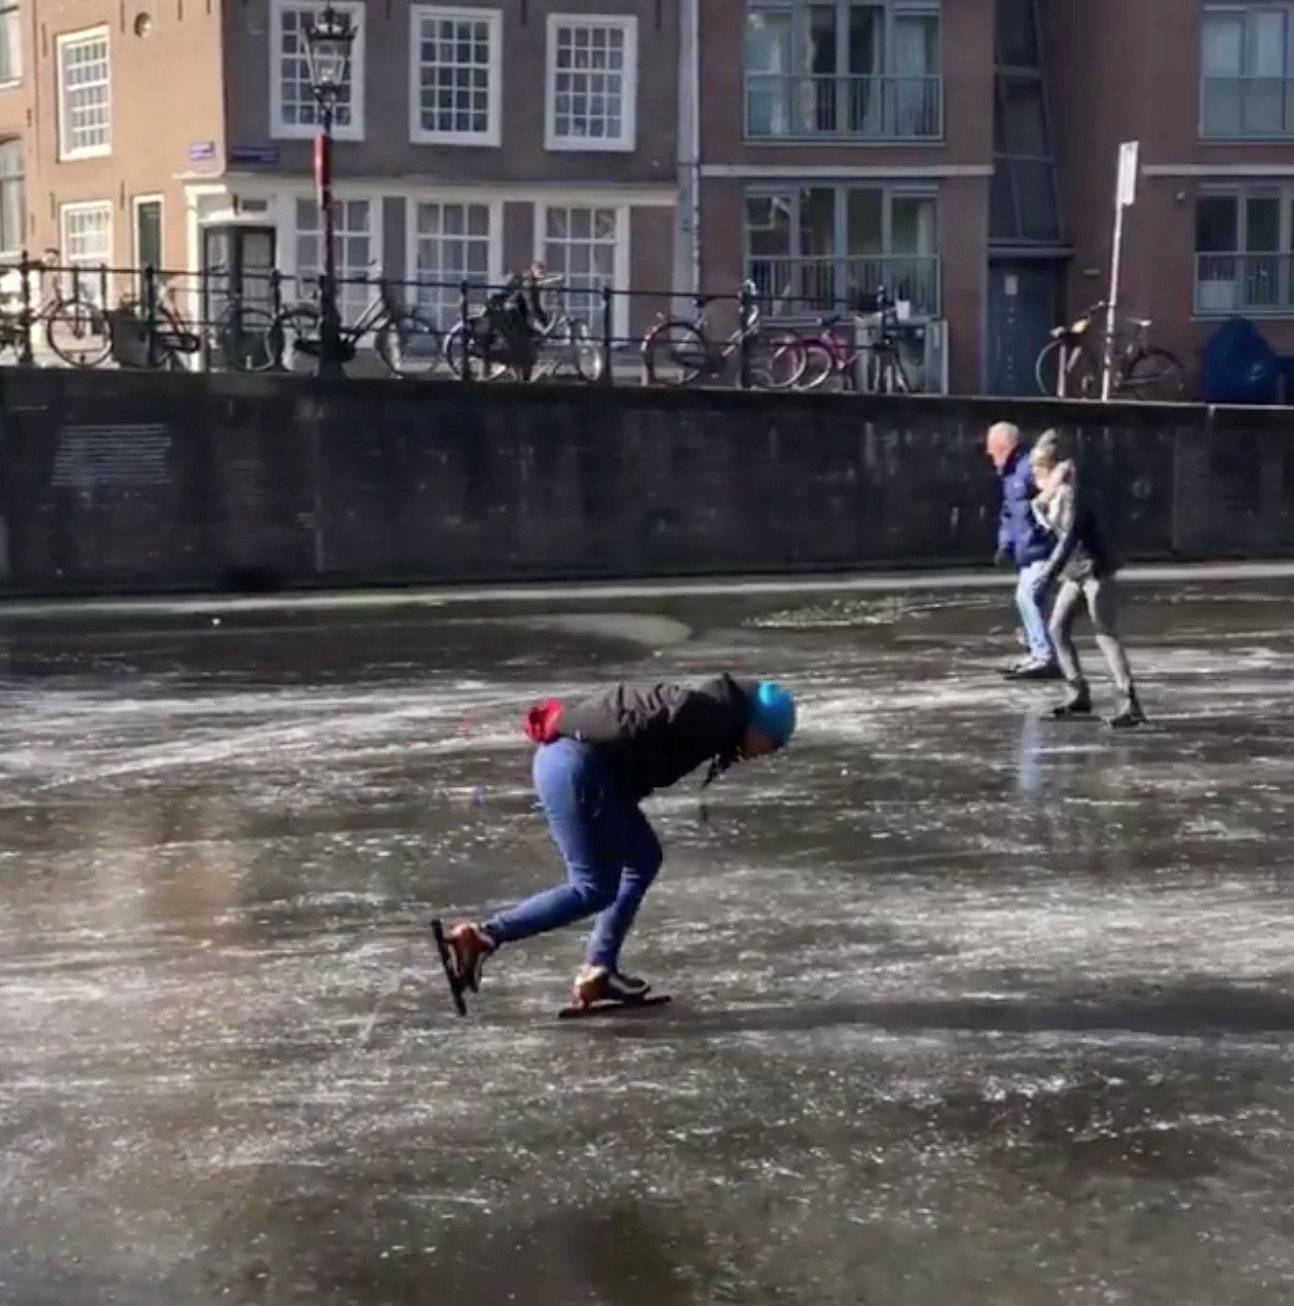 People skate on the frozen canal in Amsterdam